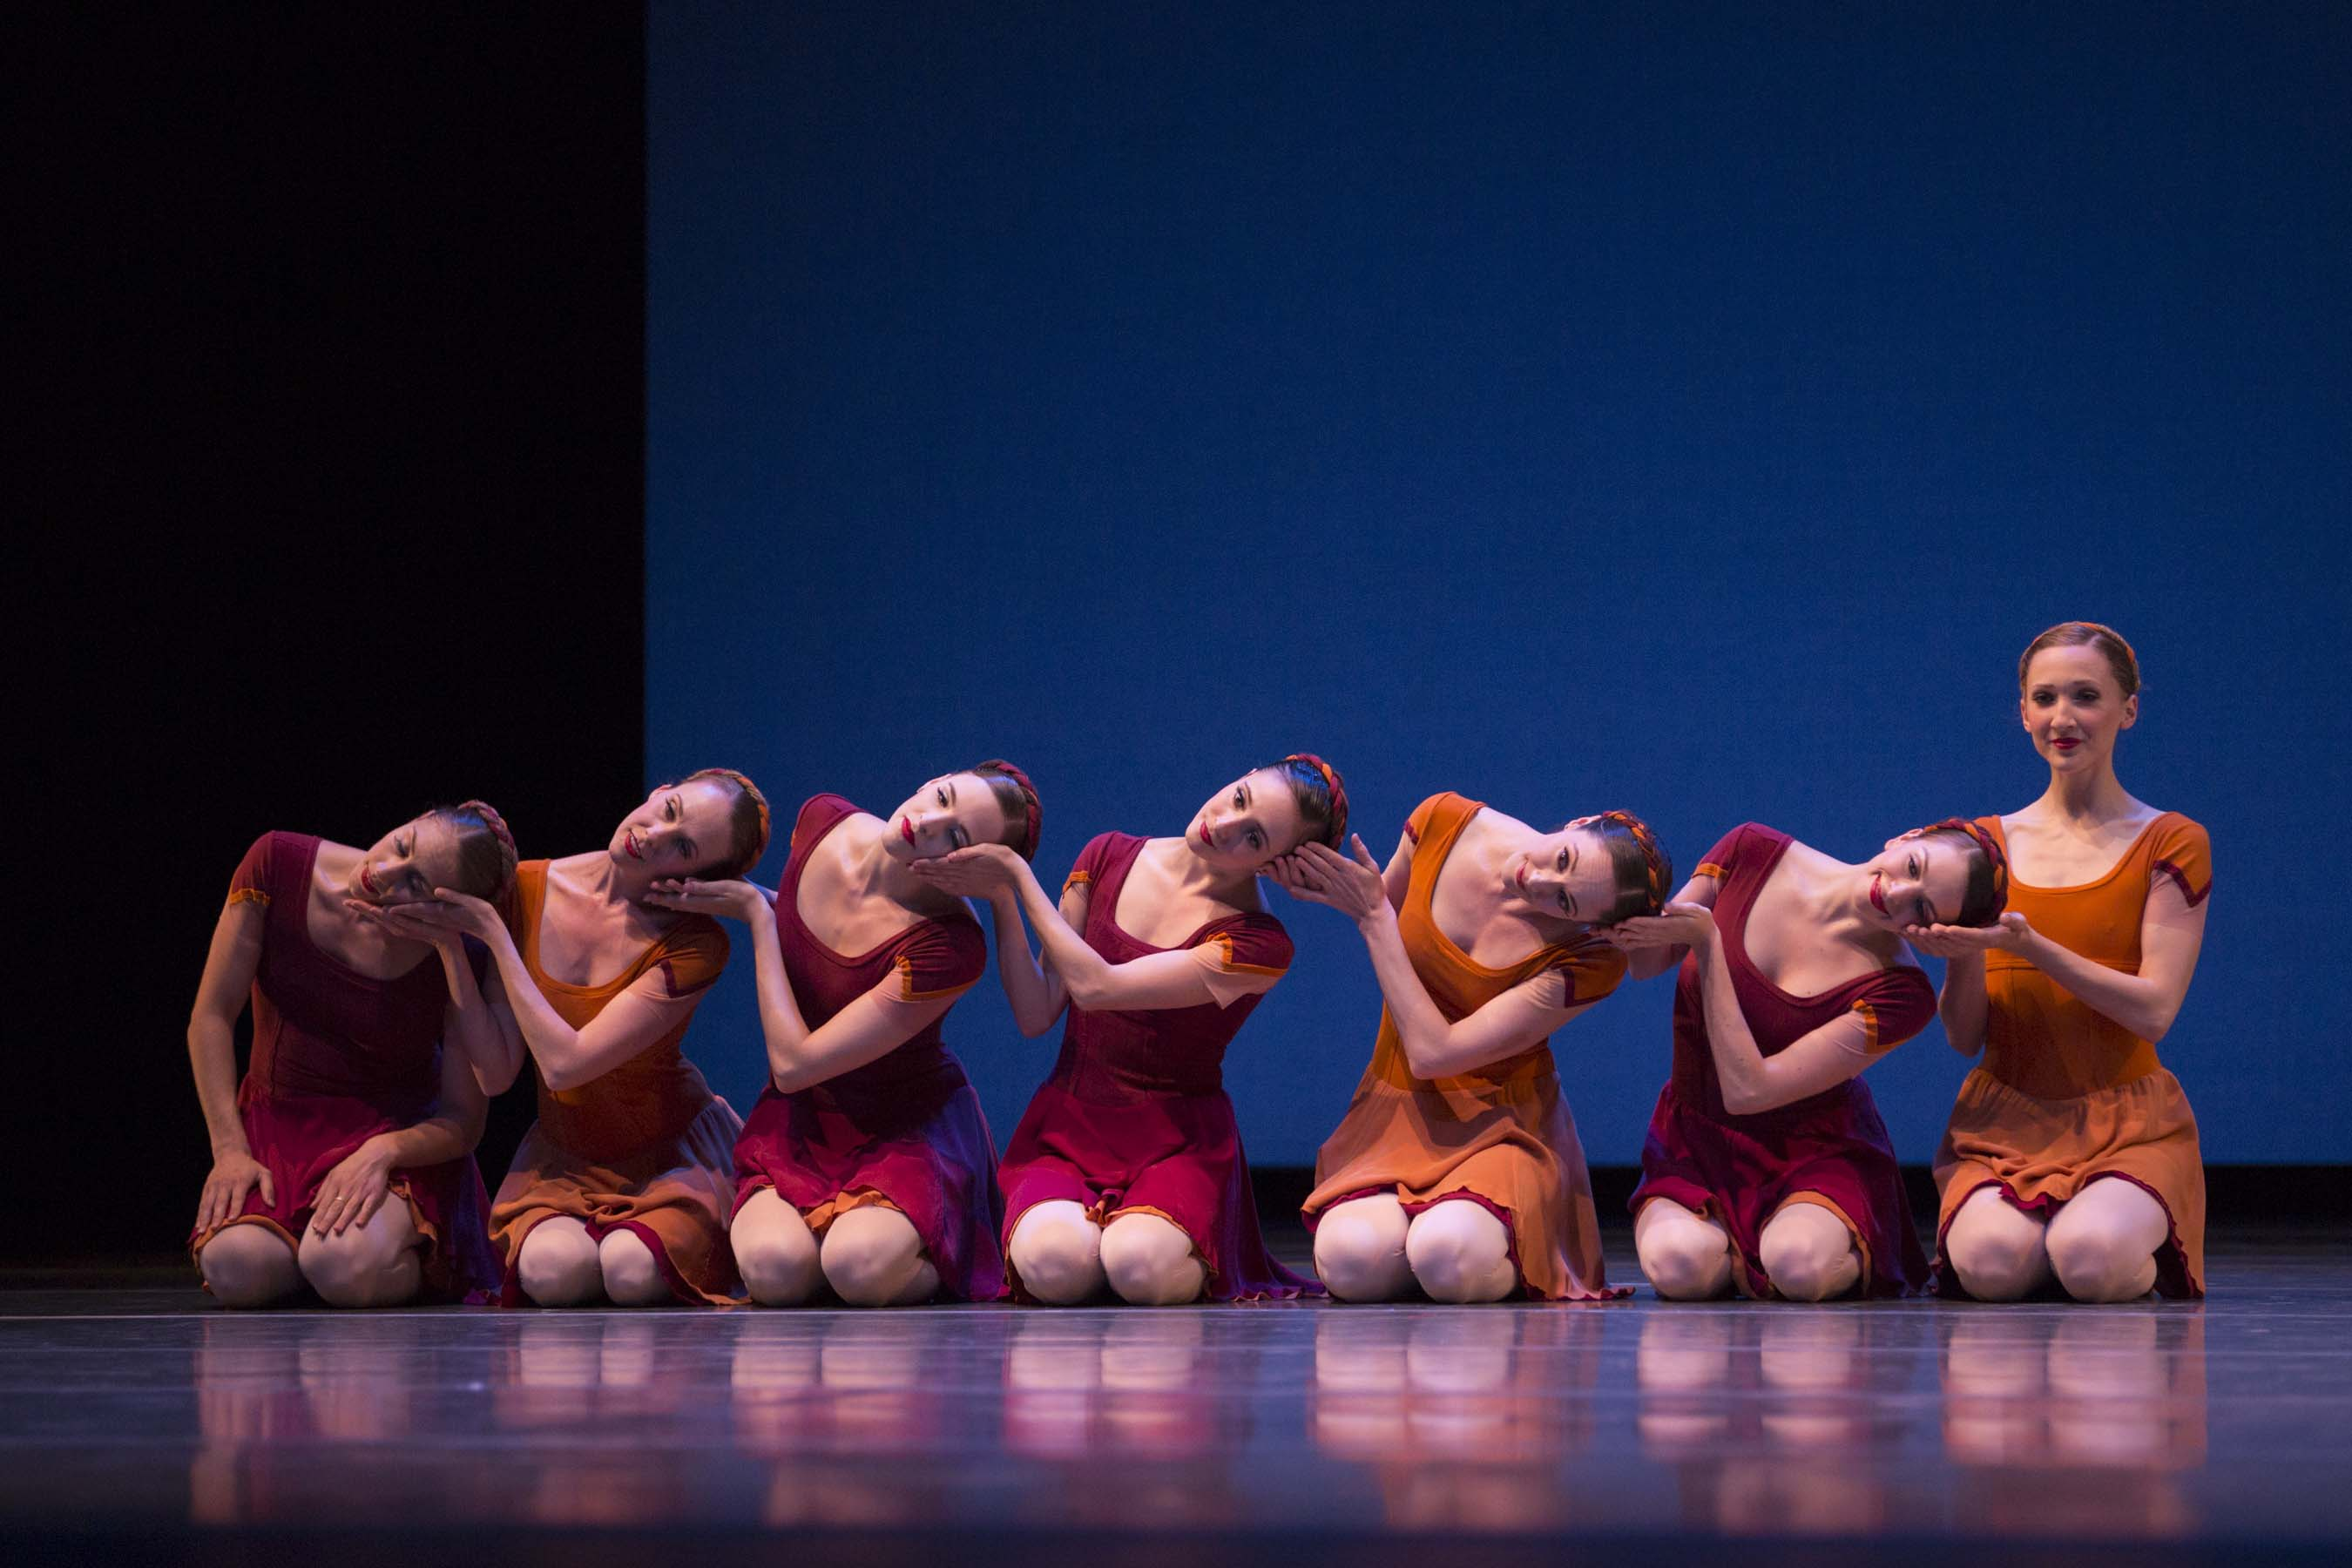 Pacific Northwest Ballet company dancers in Alexei Ratmansky's Concerto DSCH. Photo © Angela Sterling.